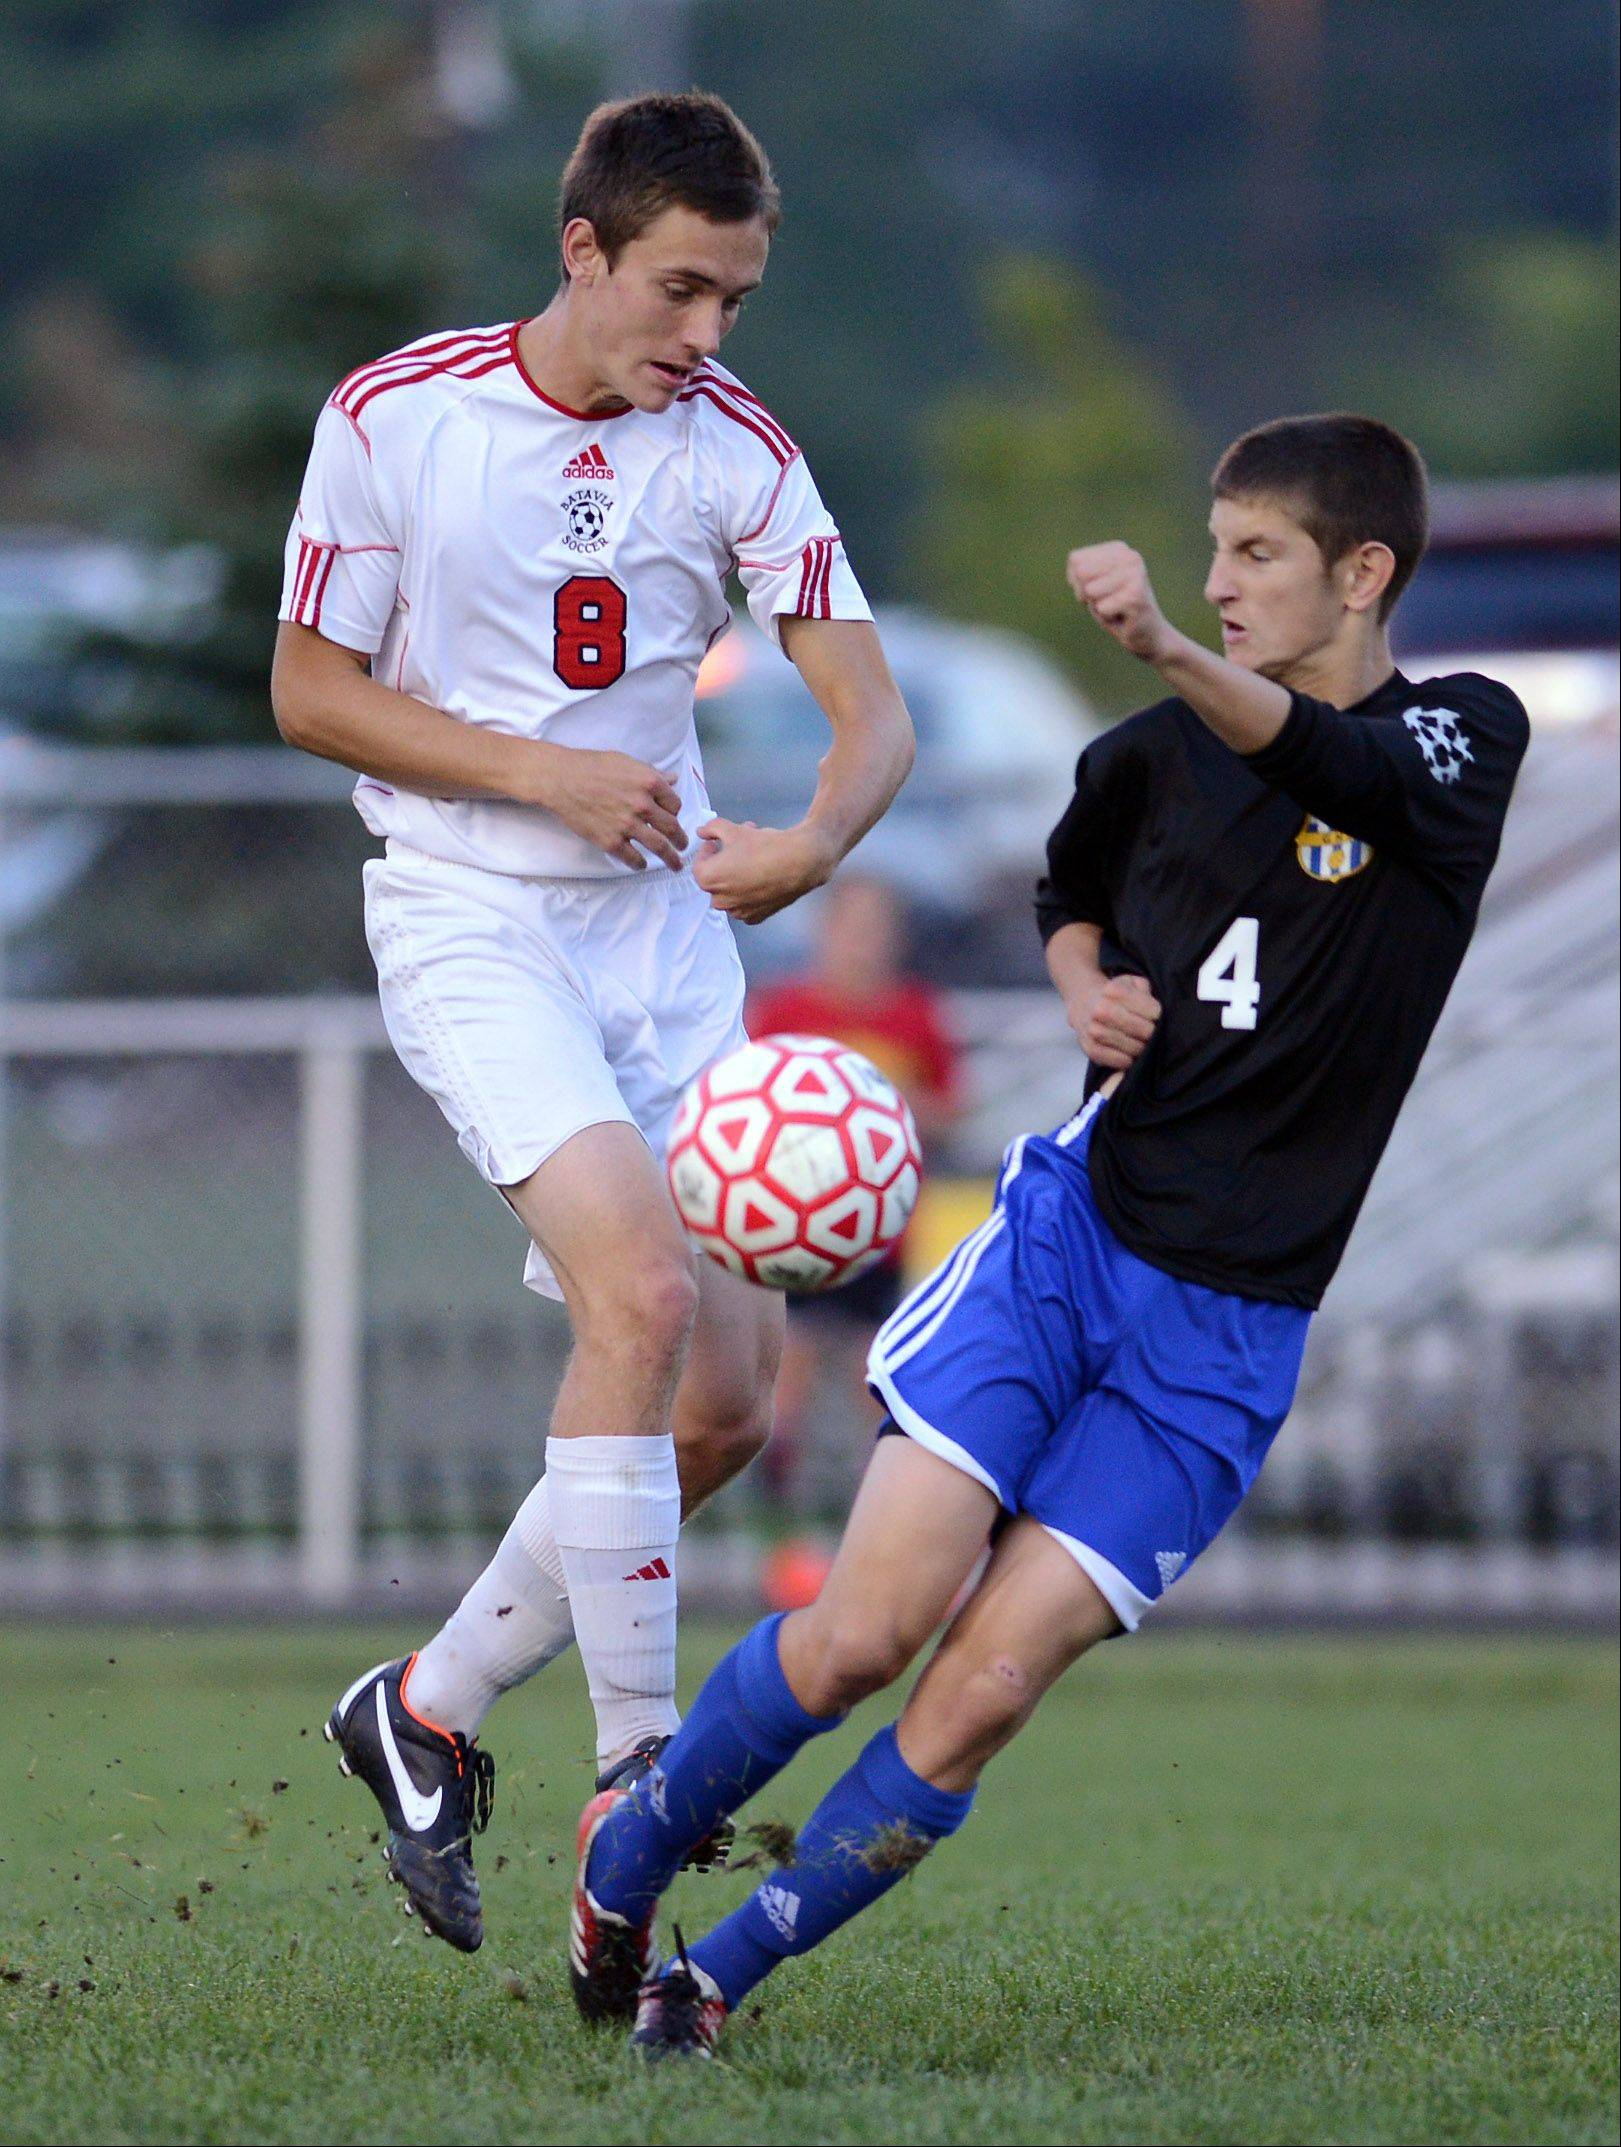 Batavia�s Brendan Allen (8) is defended by Geneva�s Jason Lagger (4).